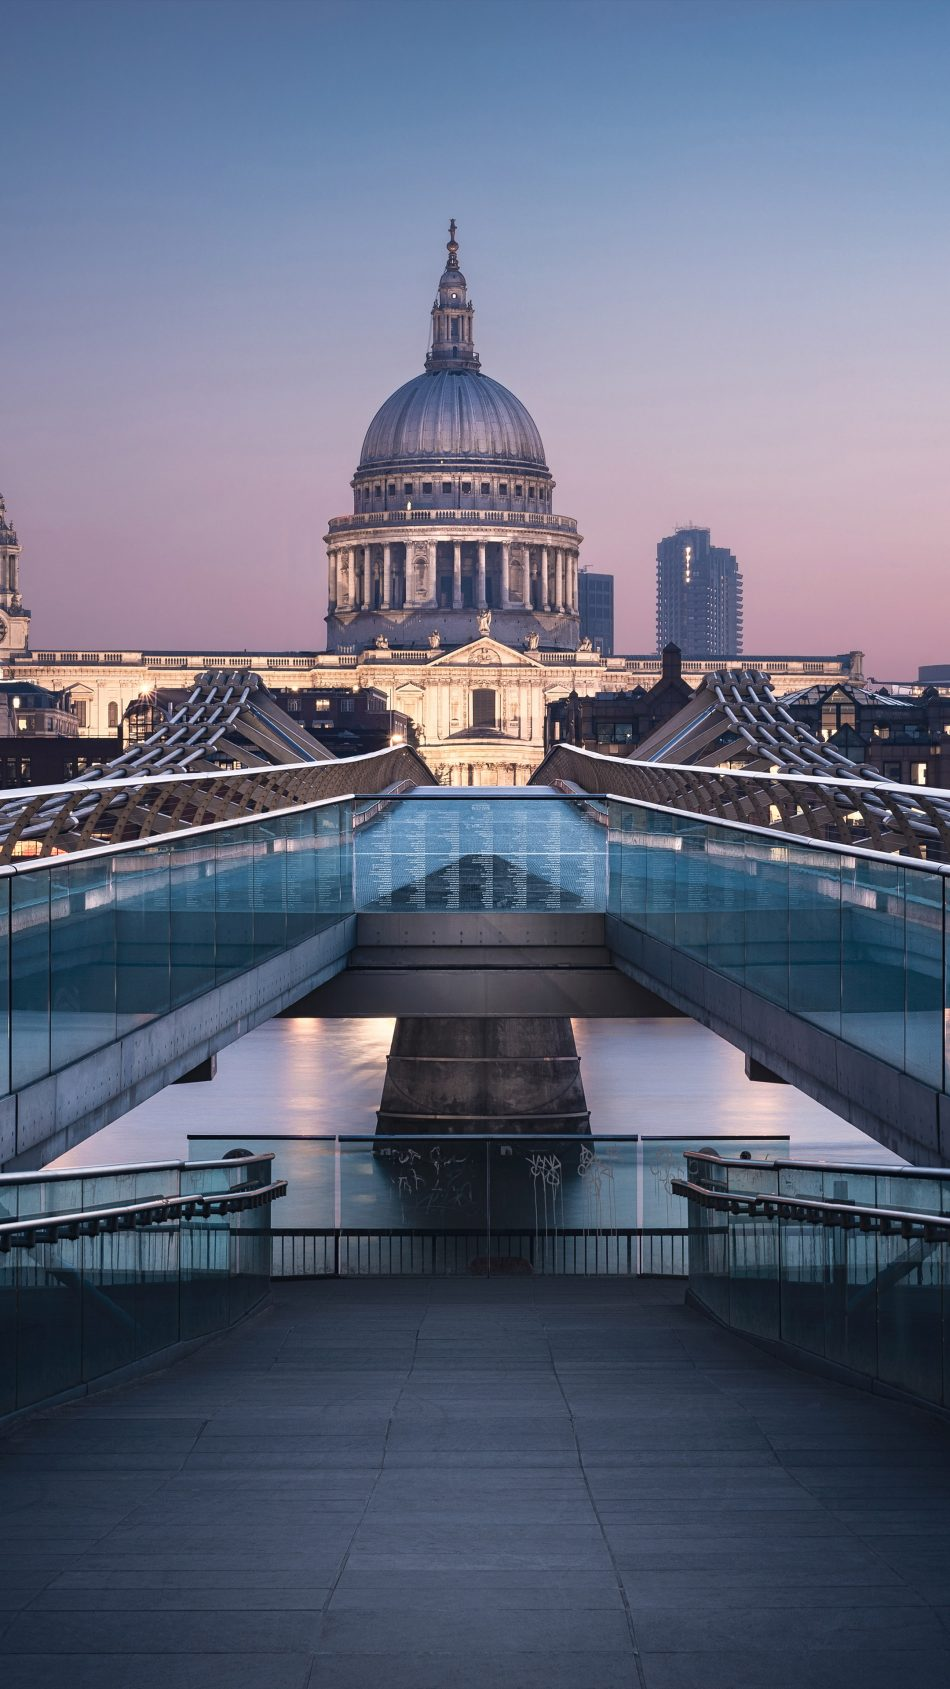 St Paul's Cathedral Millennium Bridge 4K Ultra HD Mobile Wallpaper